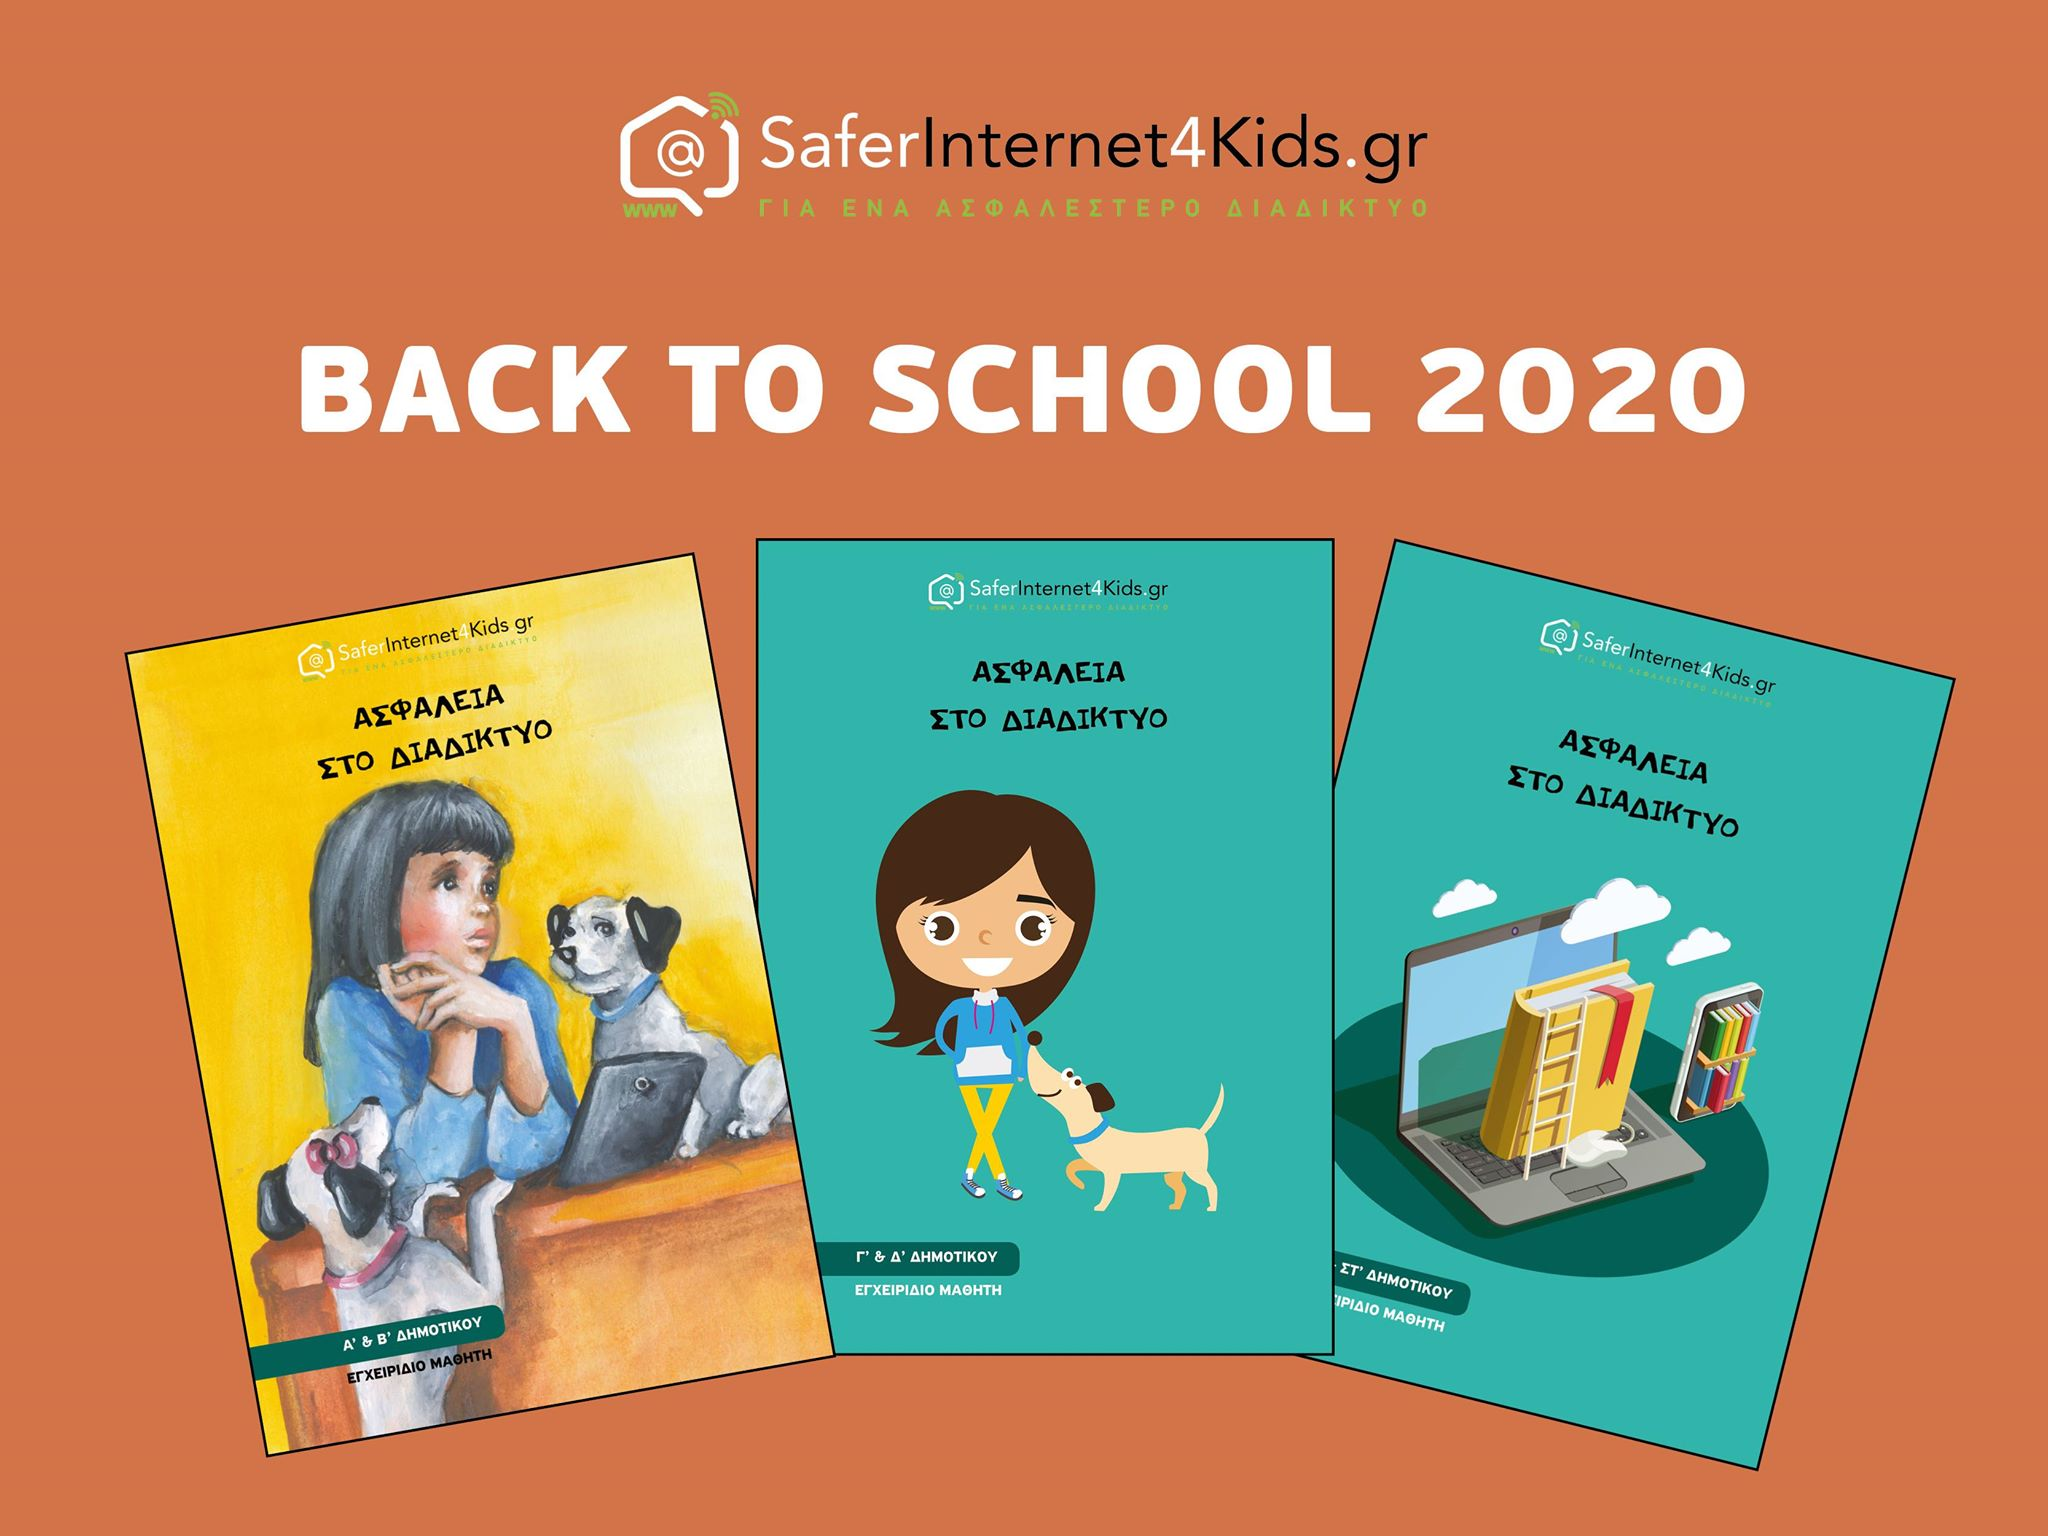 Images of the training booklets developed by the Greek Safer Internet Centre for back to school